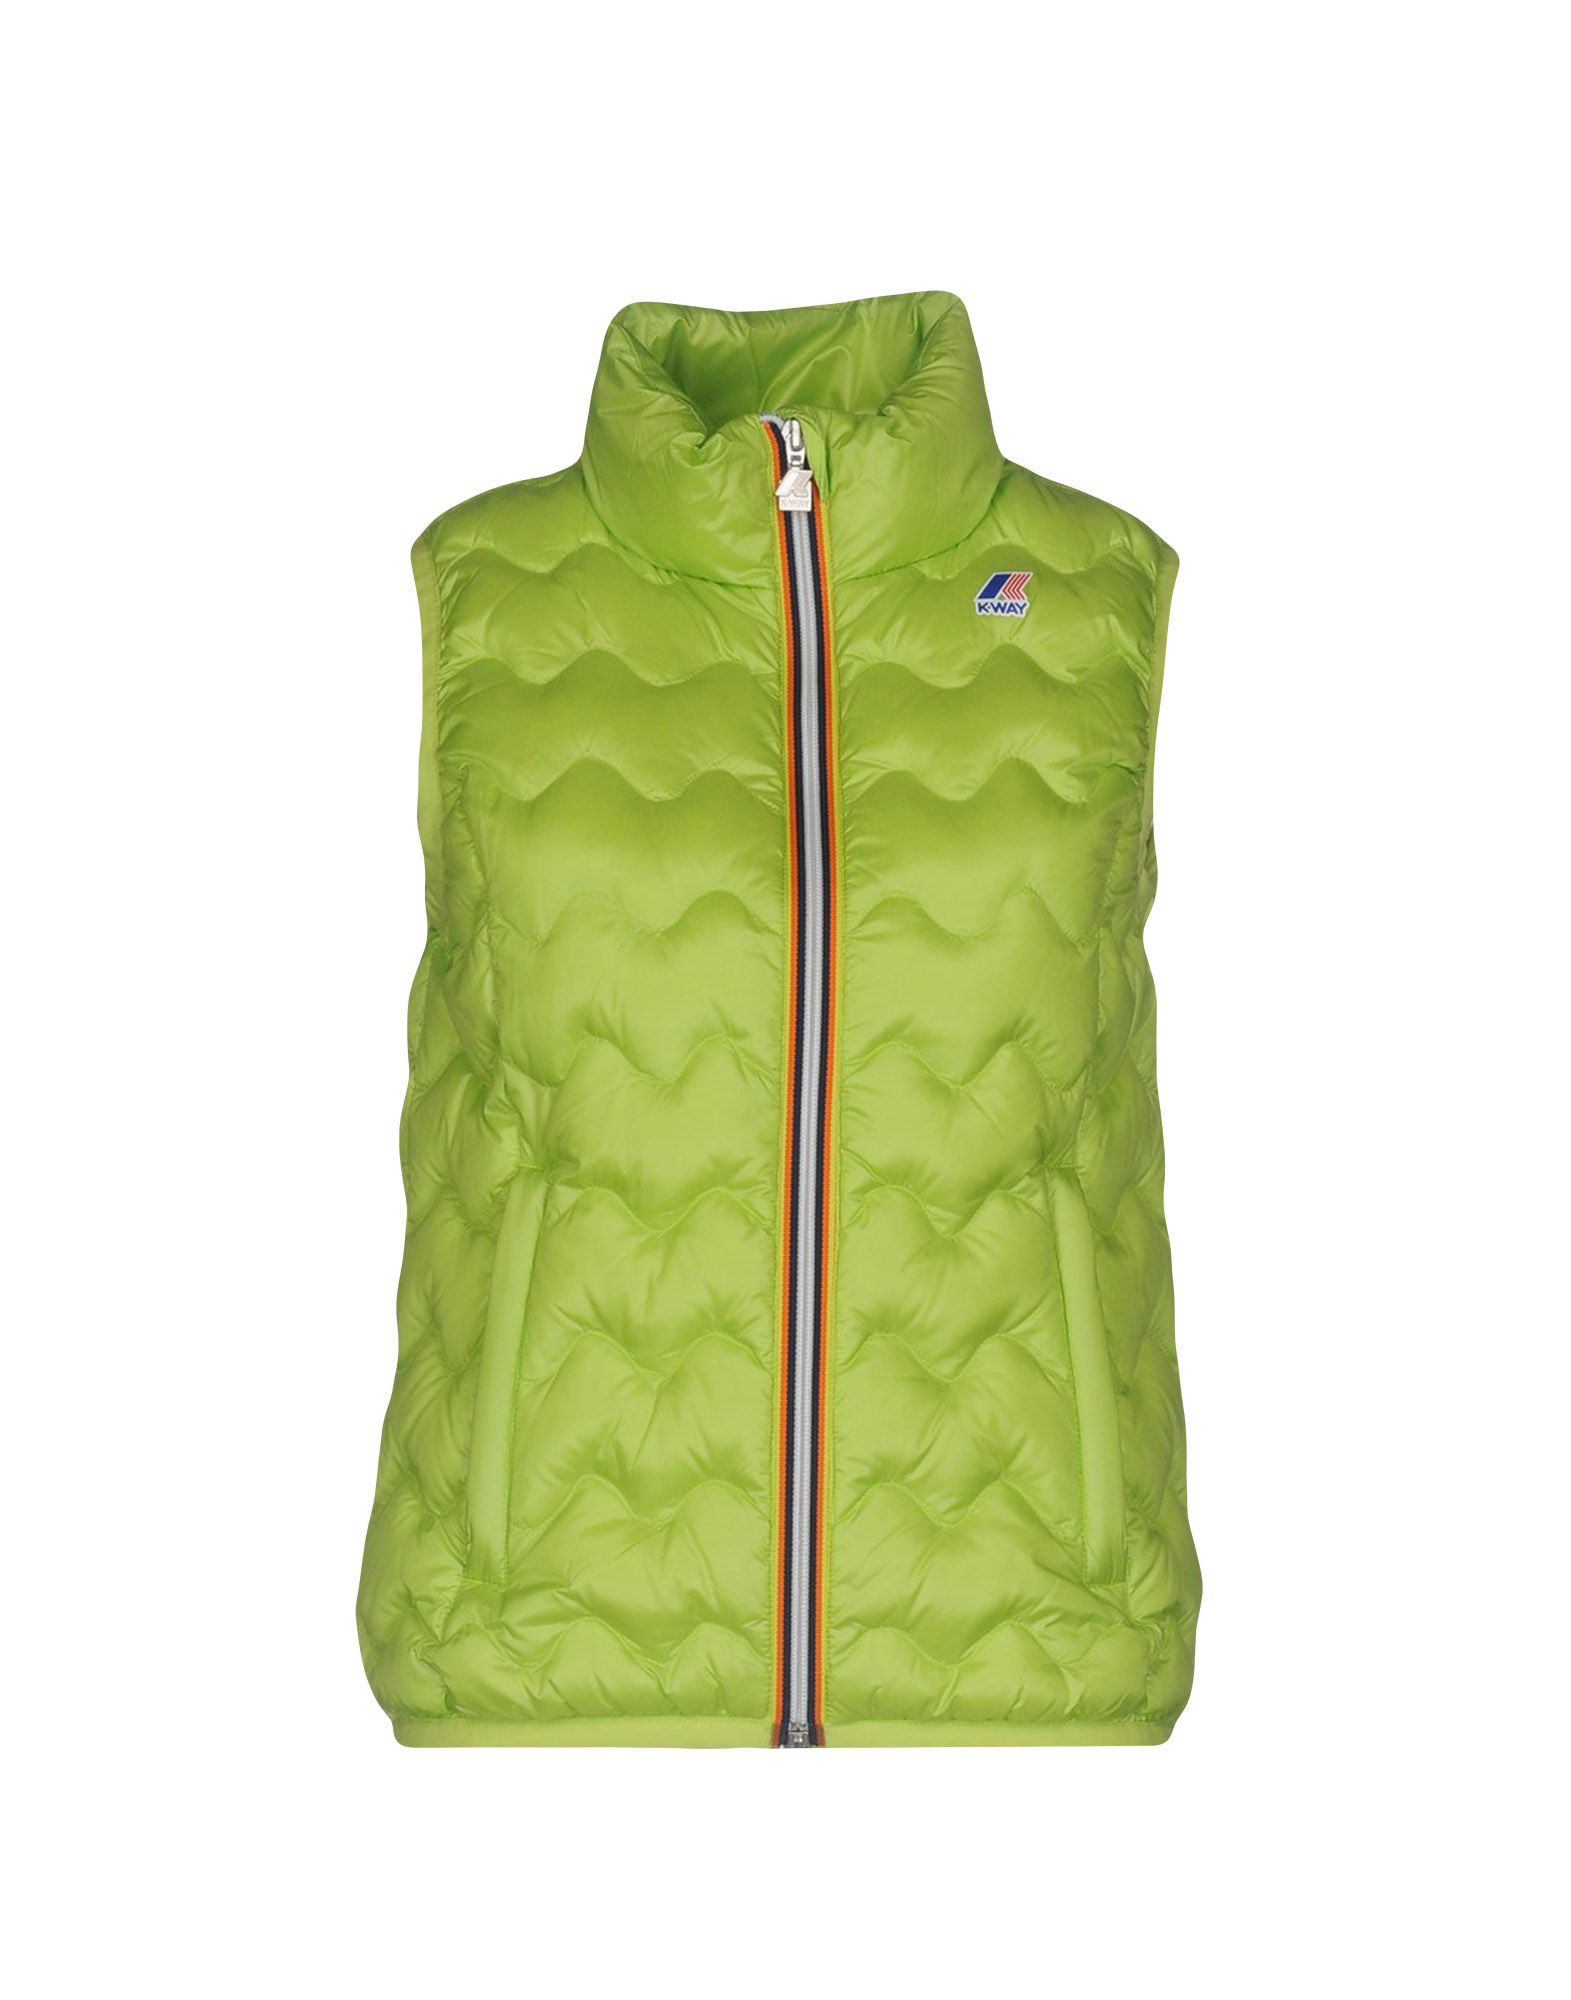 Gilet K-Way Donna - Acquista online su Pn8gV